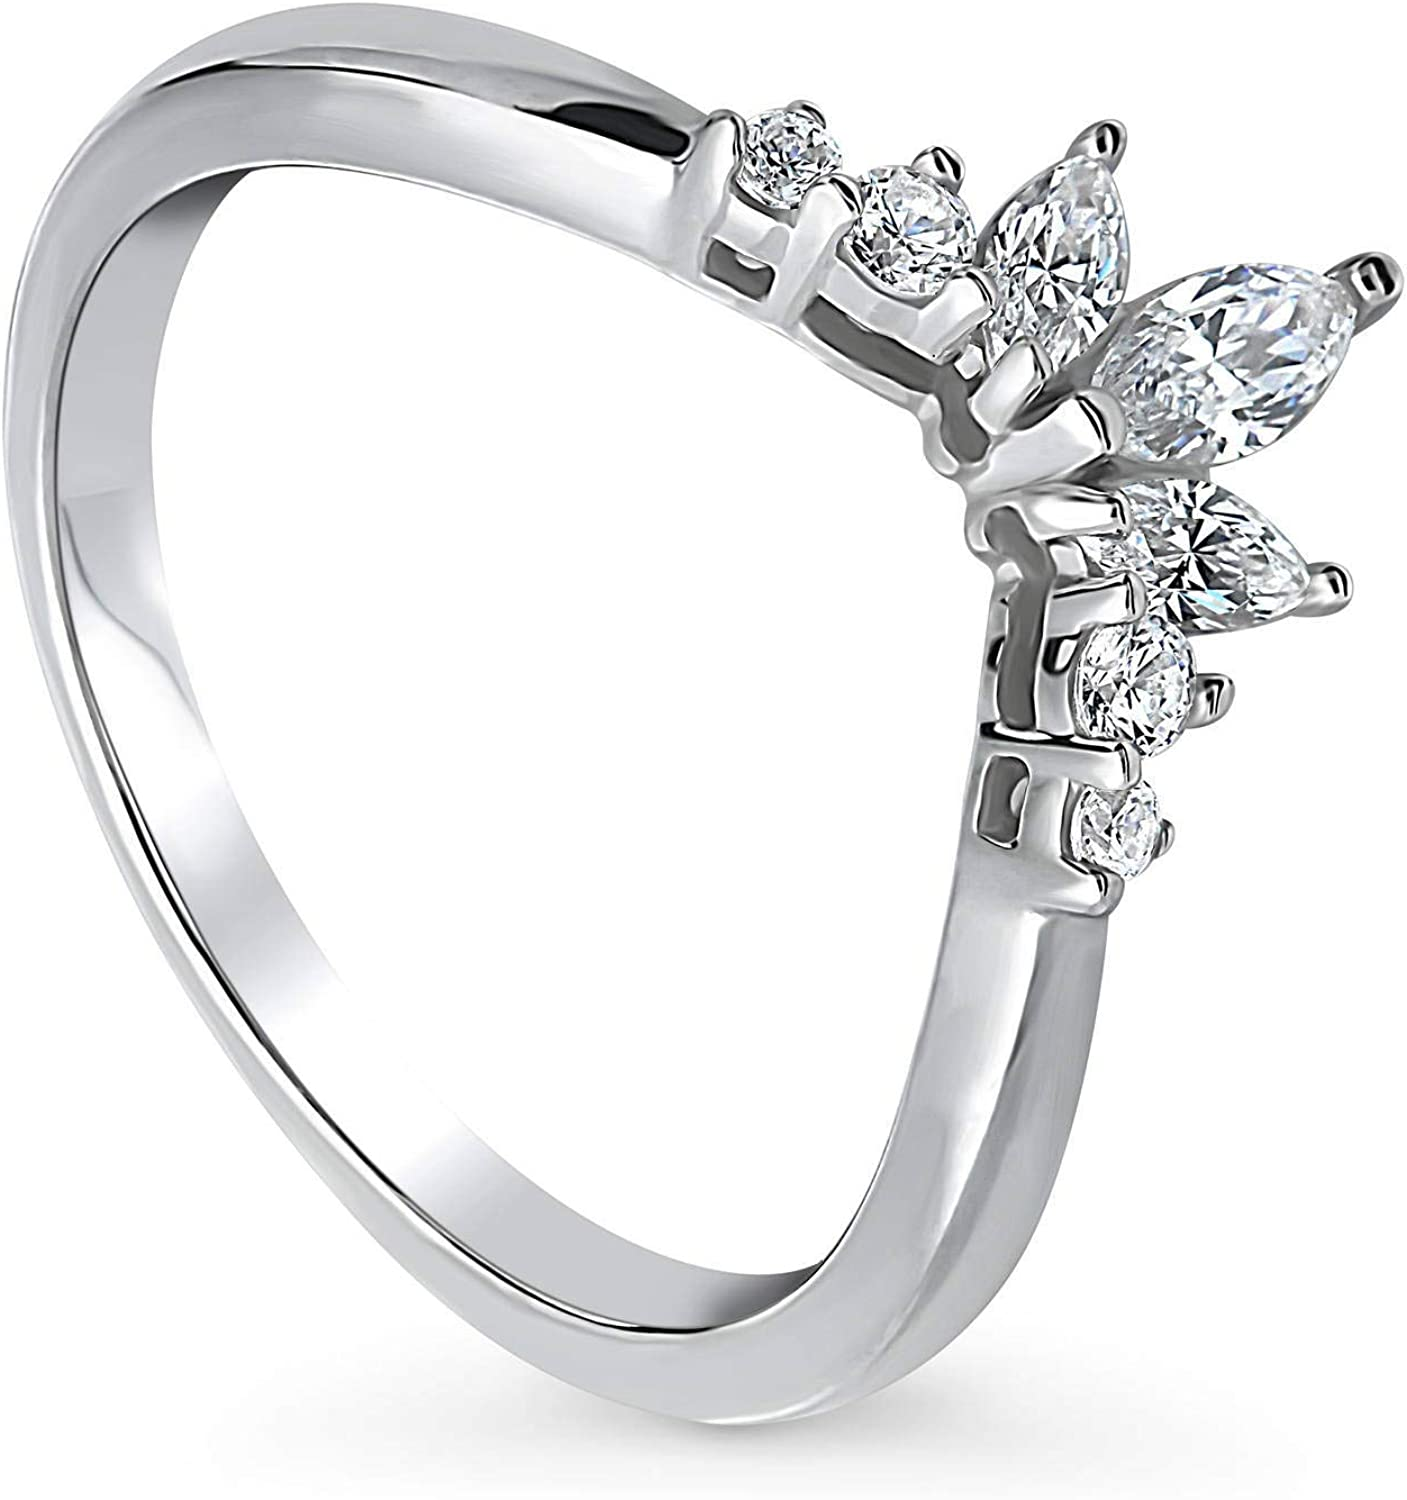 Sterling Silver Ring Rhodium-Plated Flower Band New